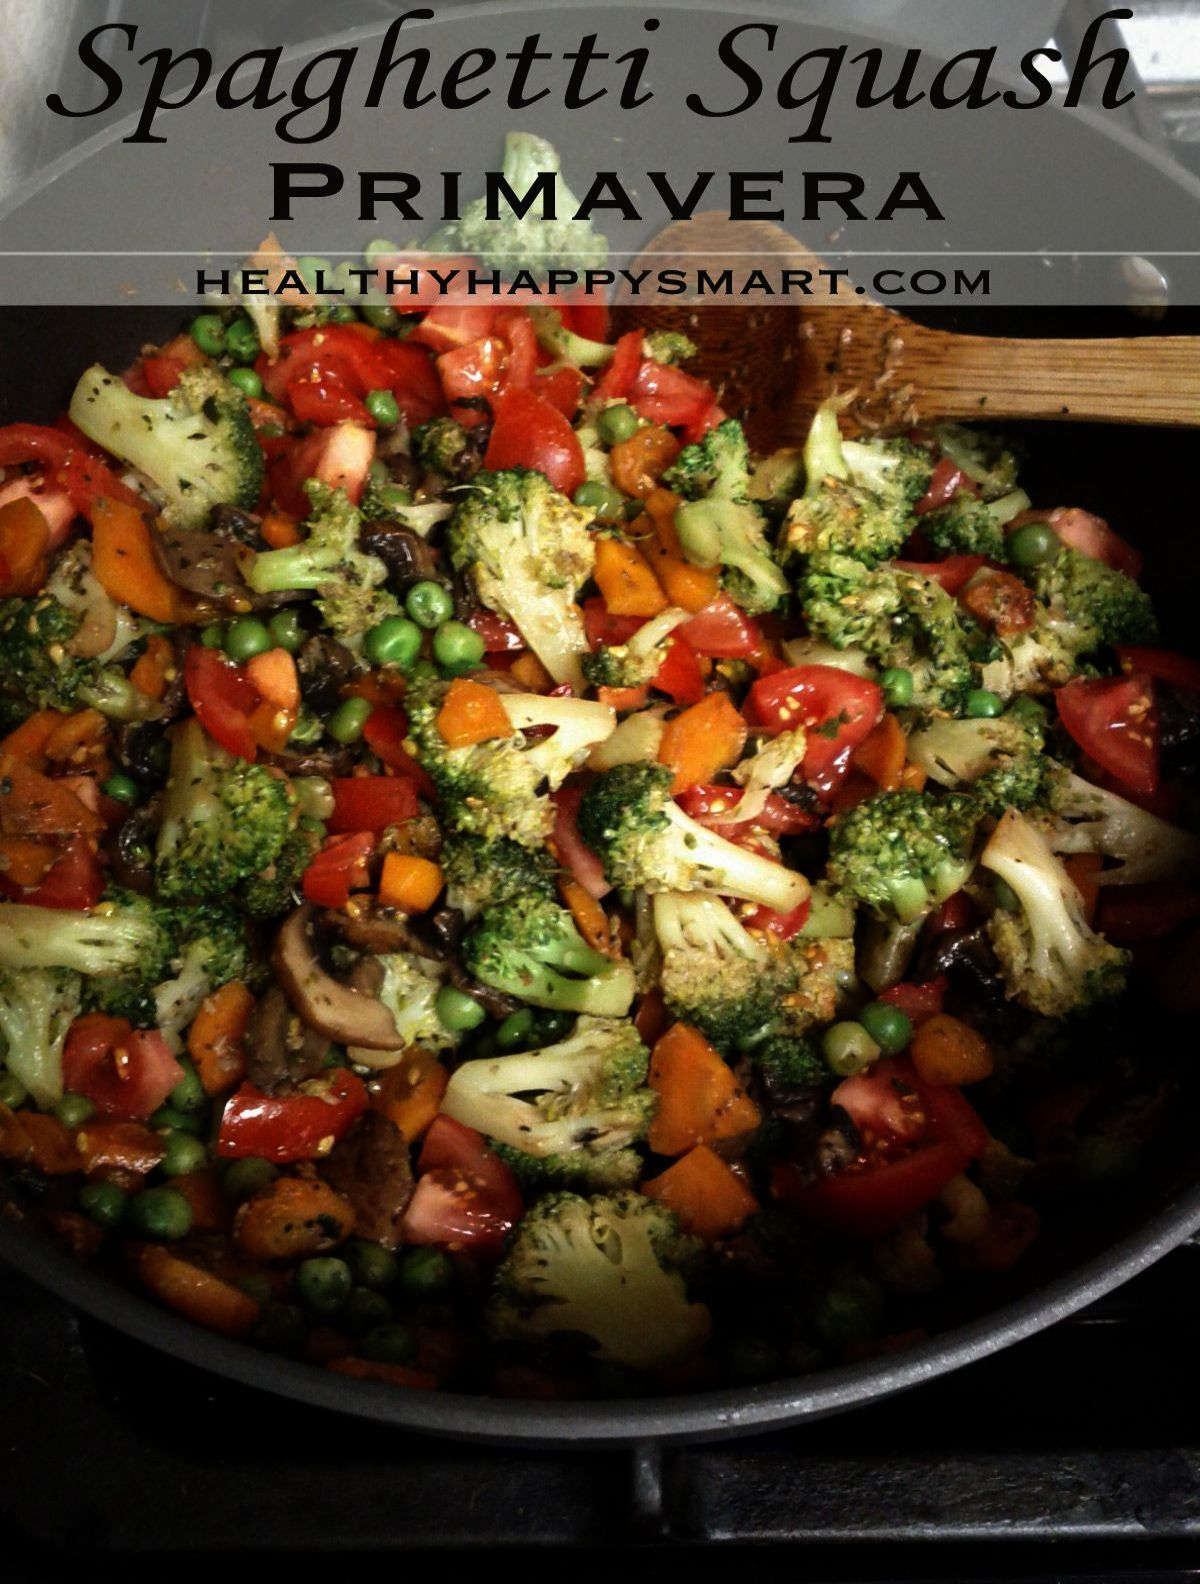 Easy Clean Eating Recipes For Two if Healthy Eating Curry Recipes your Healthy Eating Recipes For One #cleaneatingresults Easy Clean Eating Recipes For Two if Healthy Eating Curry Recipes your Healthy Eating Recipes For One #cleaneatingresults